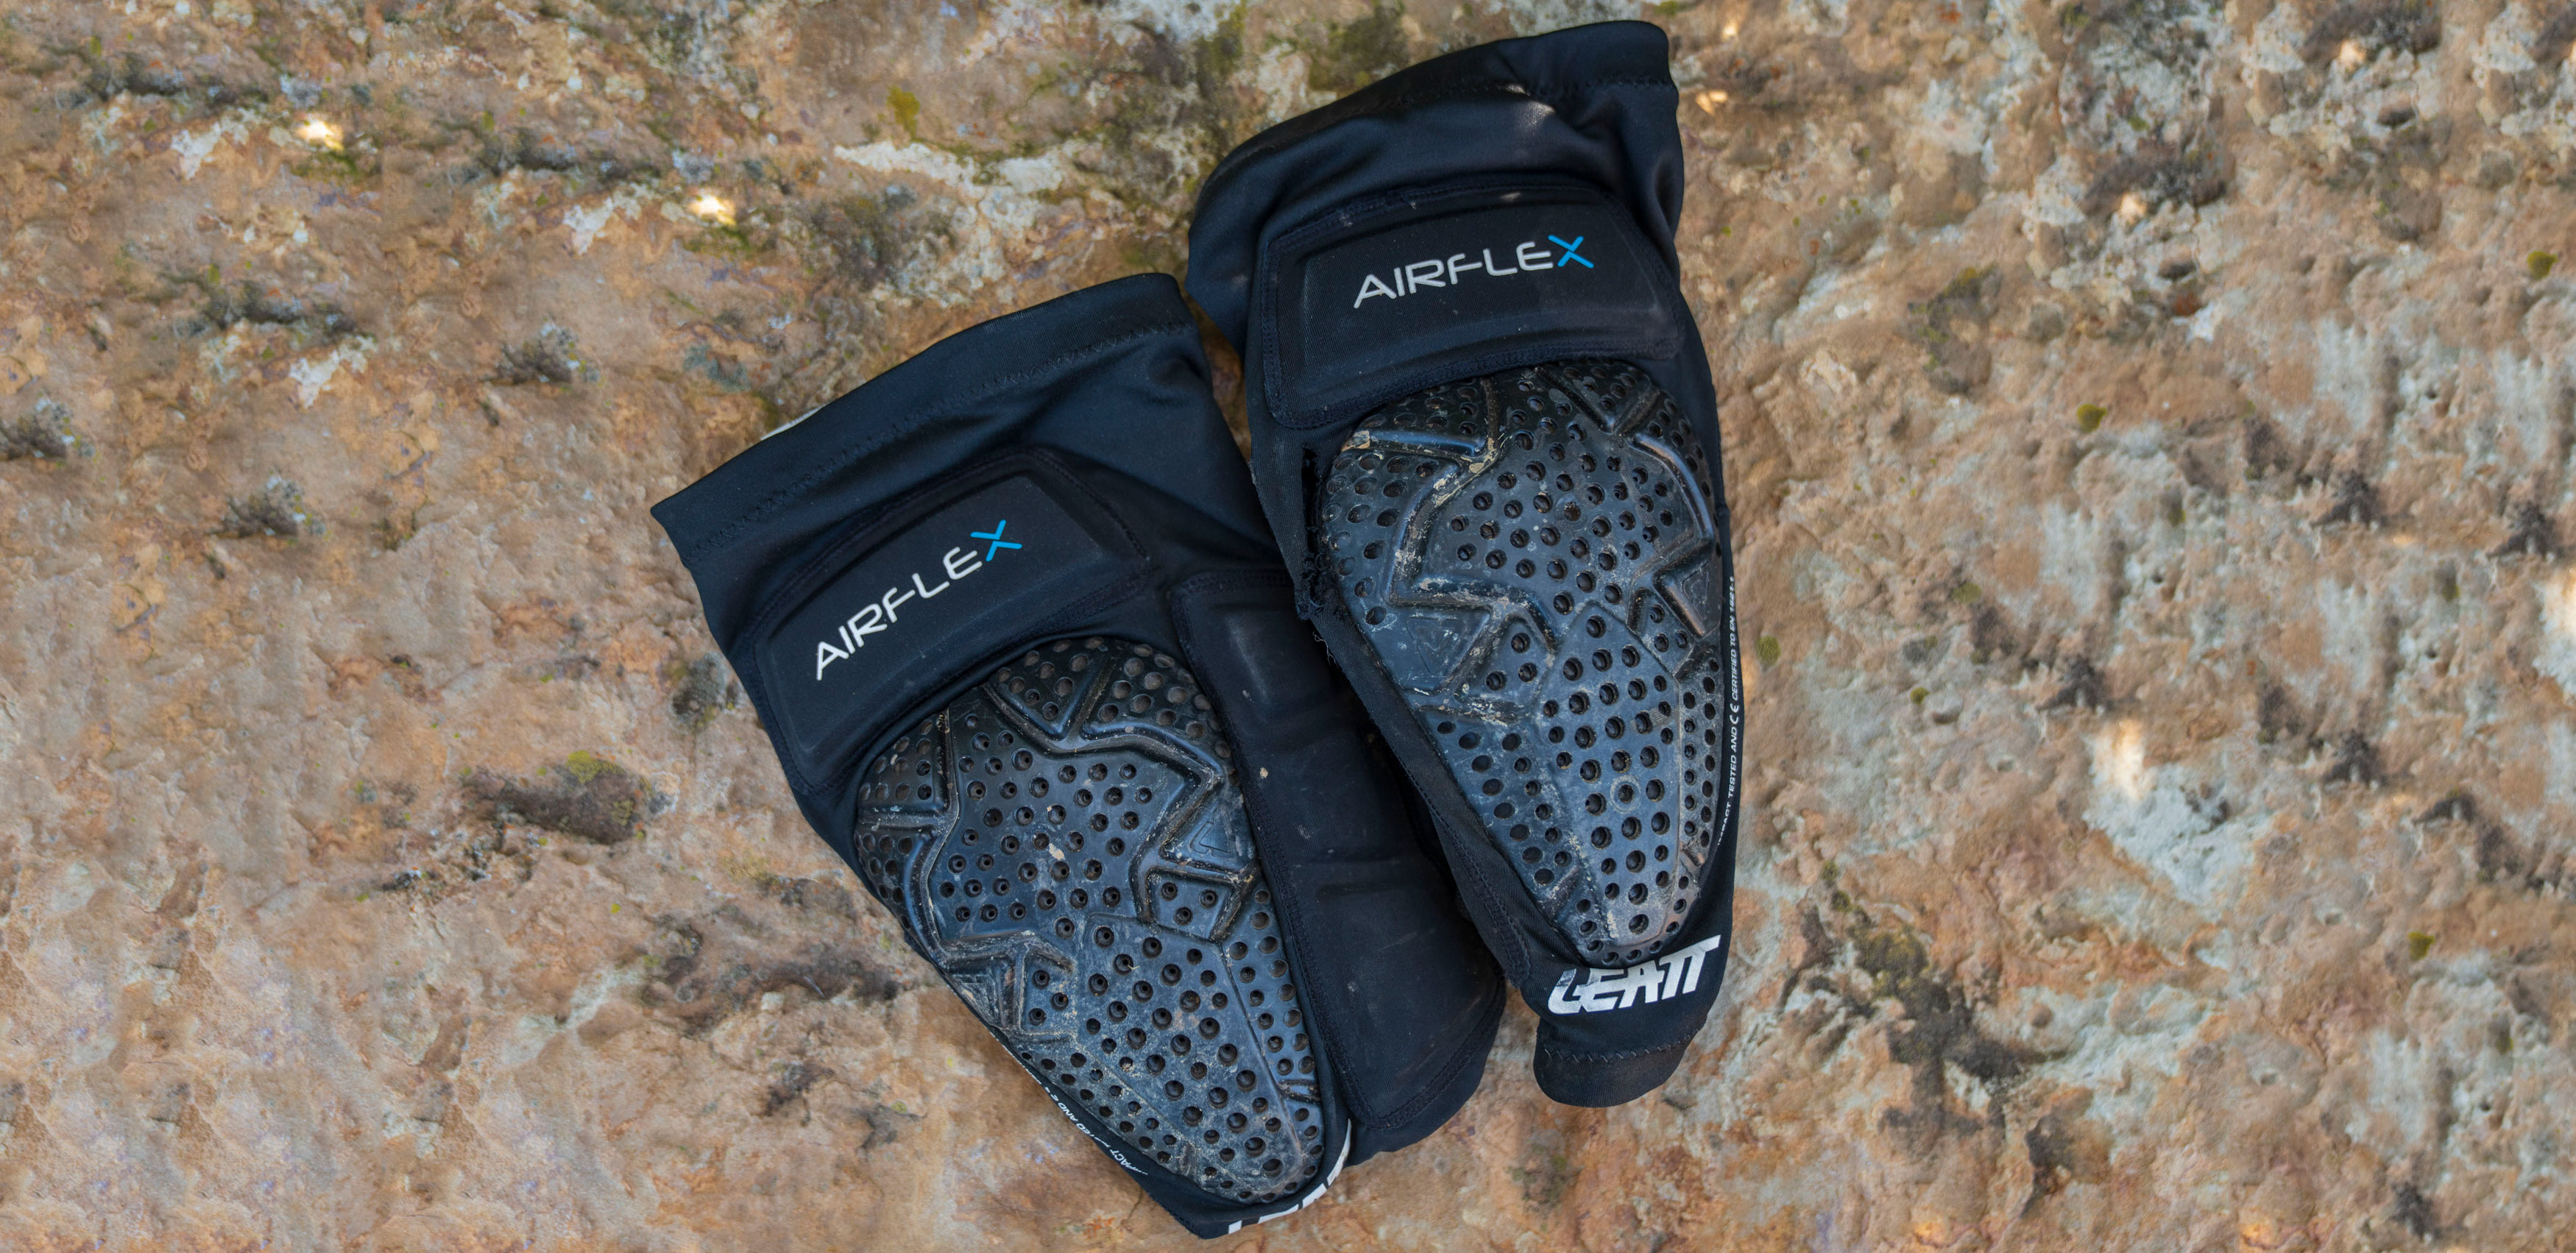 Leatt AirFlex Knee Pads